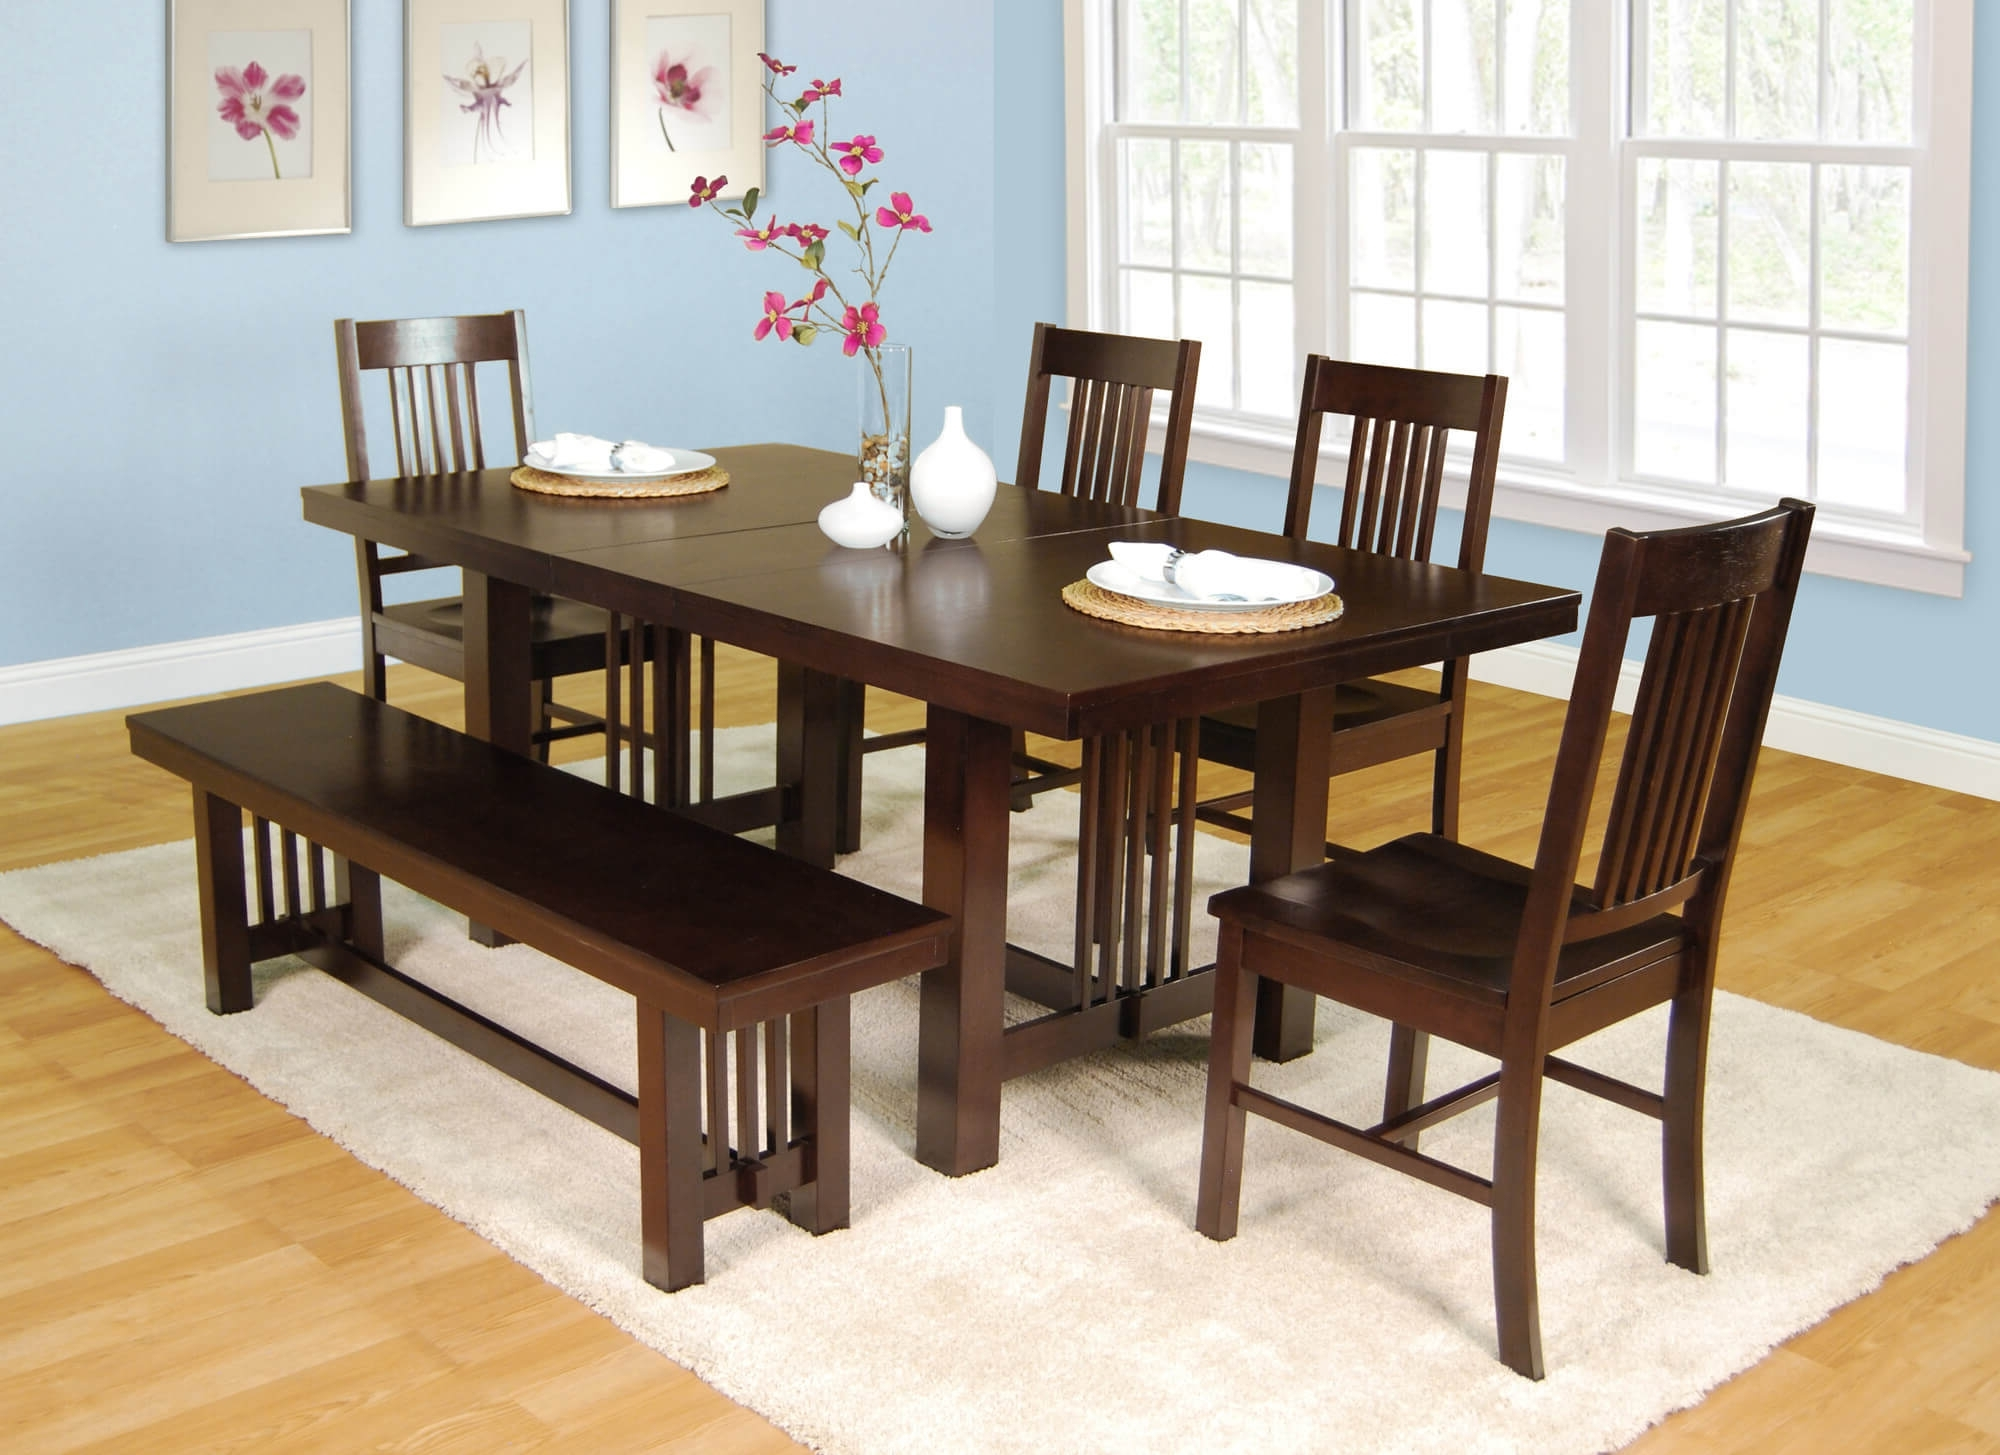 Most Current Craftsman 5 Piece Round Dining Sets With Side Chairs Throughout 26 Dining Room Sets (Big And Small) With Bench Seating (2018) (View 14 of 25)